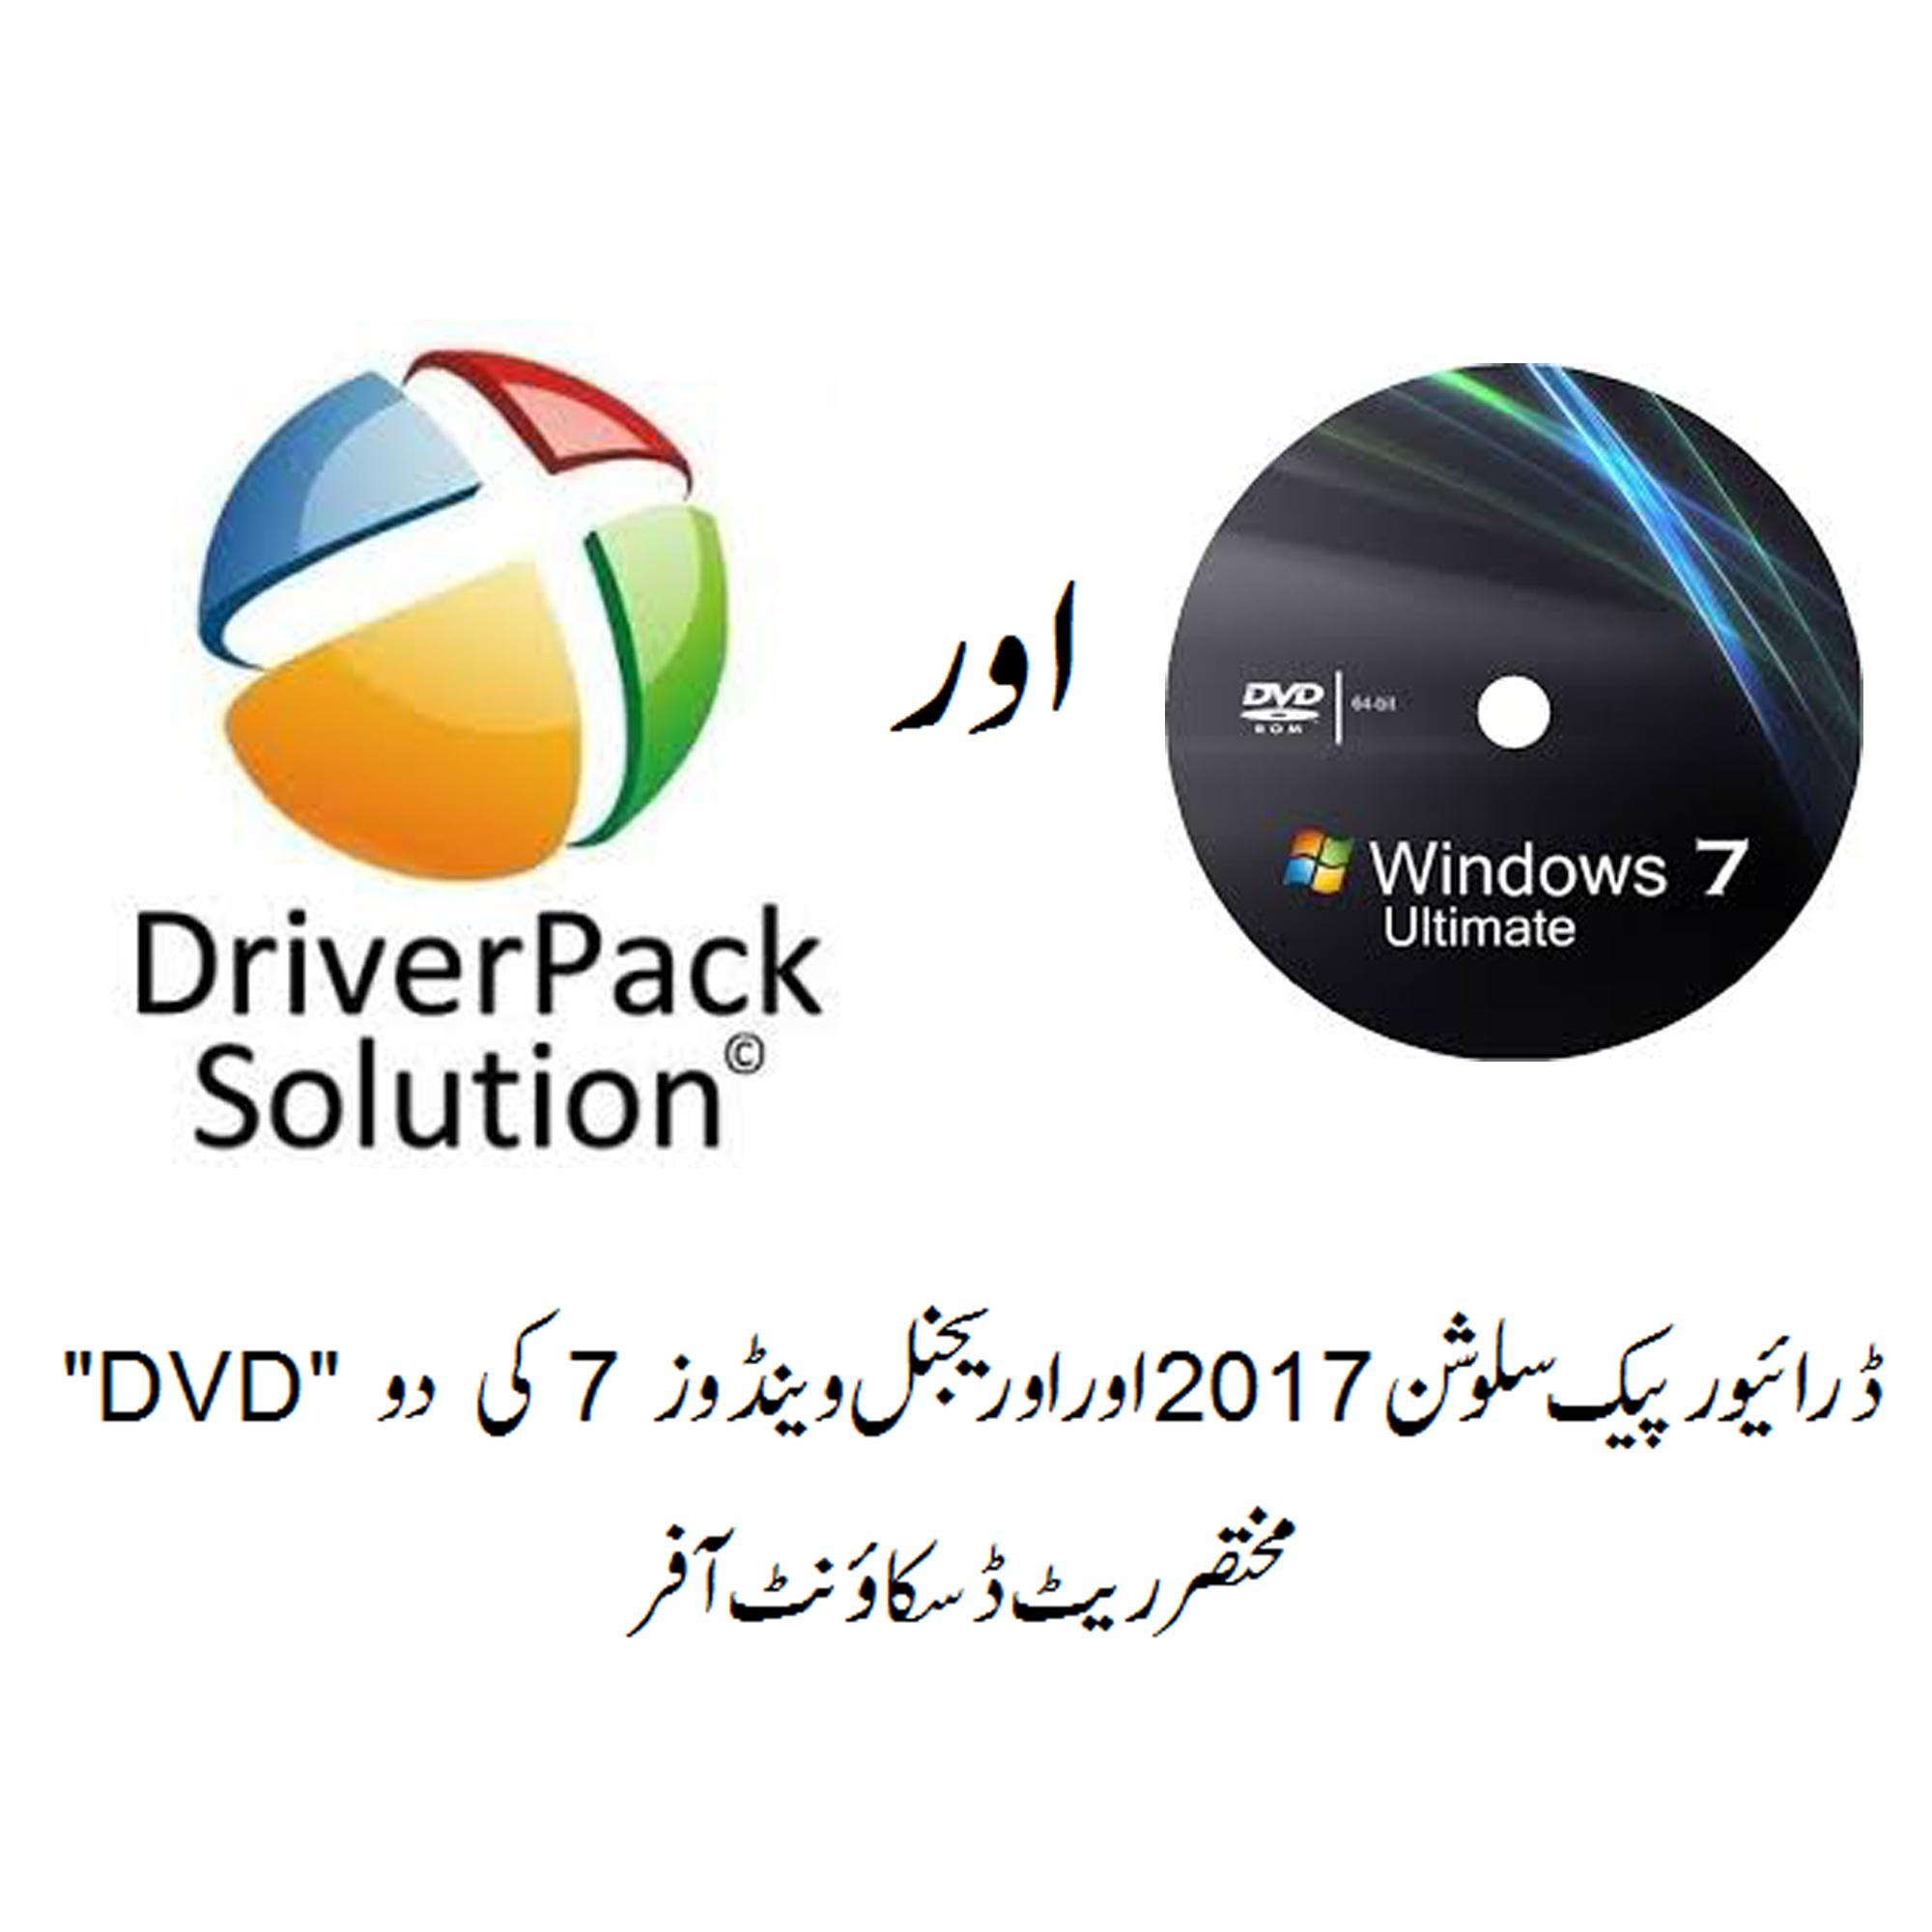 driverpack solution free download full version for windows 7 ultimate